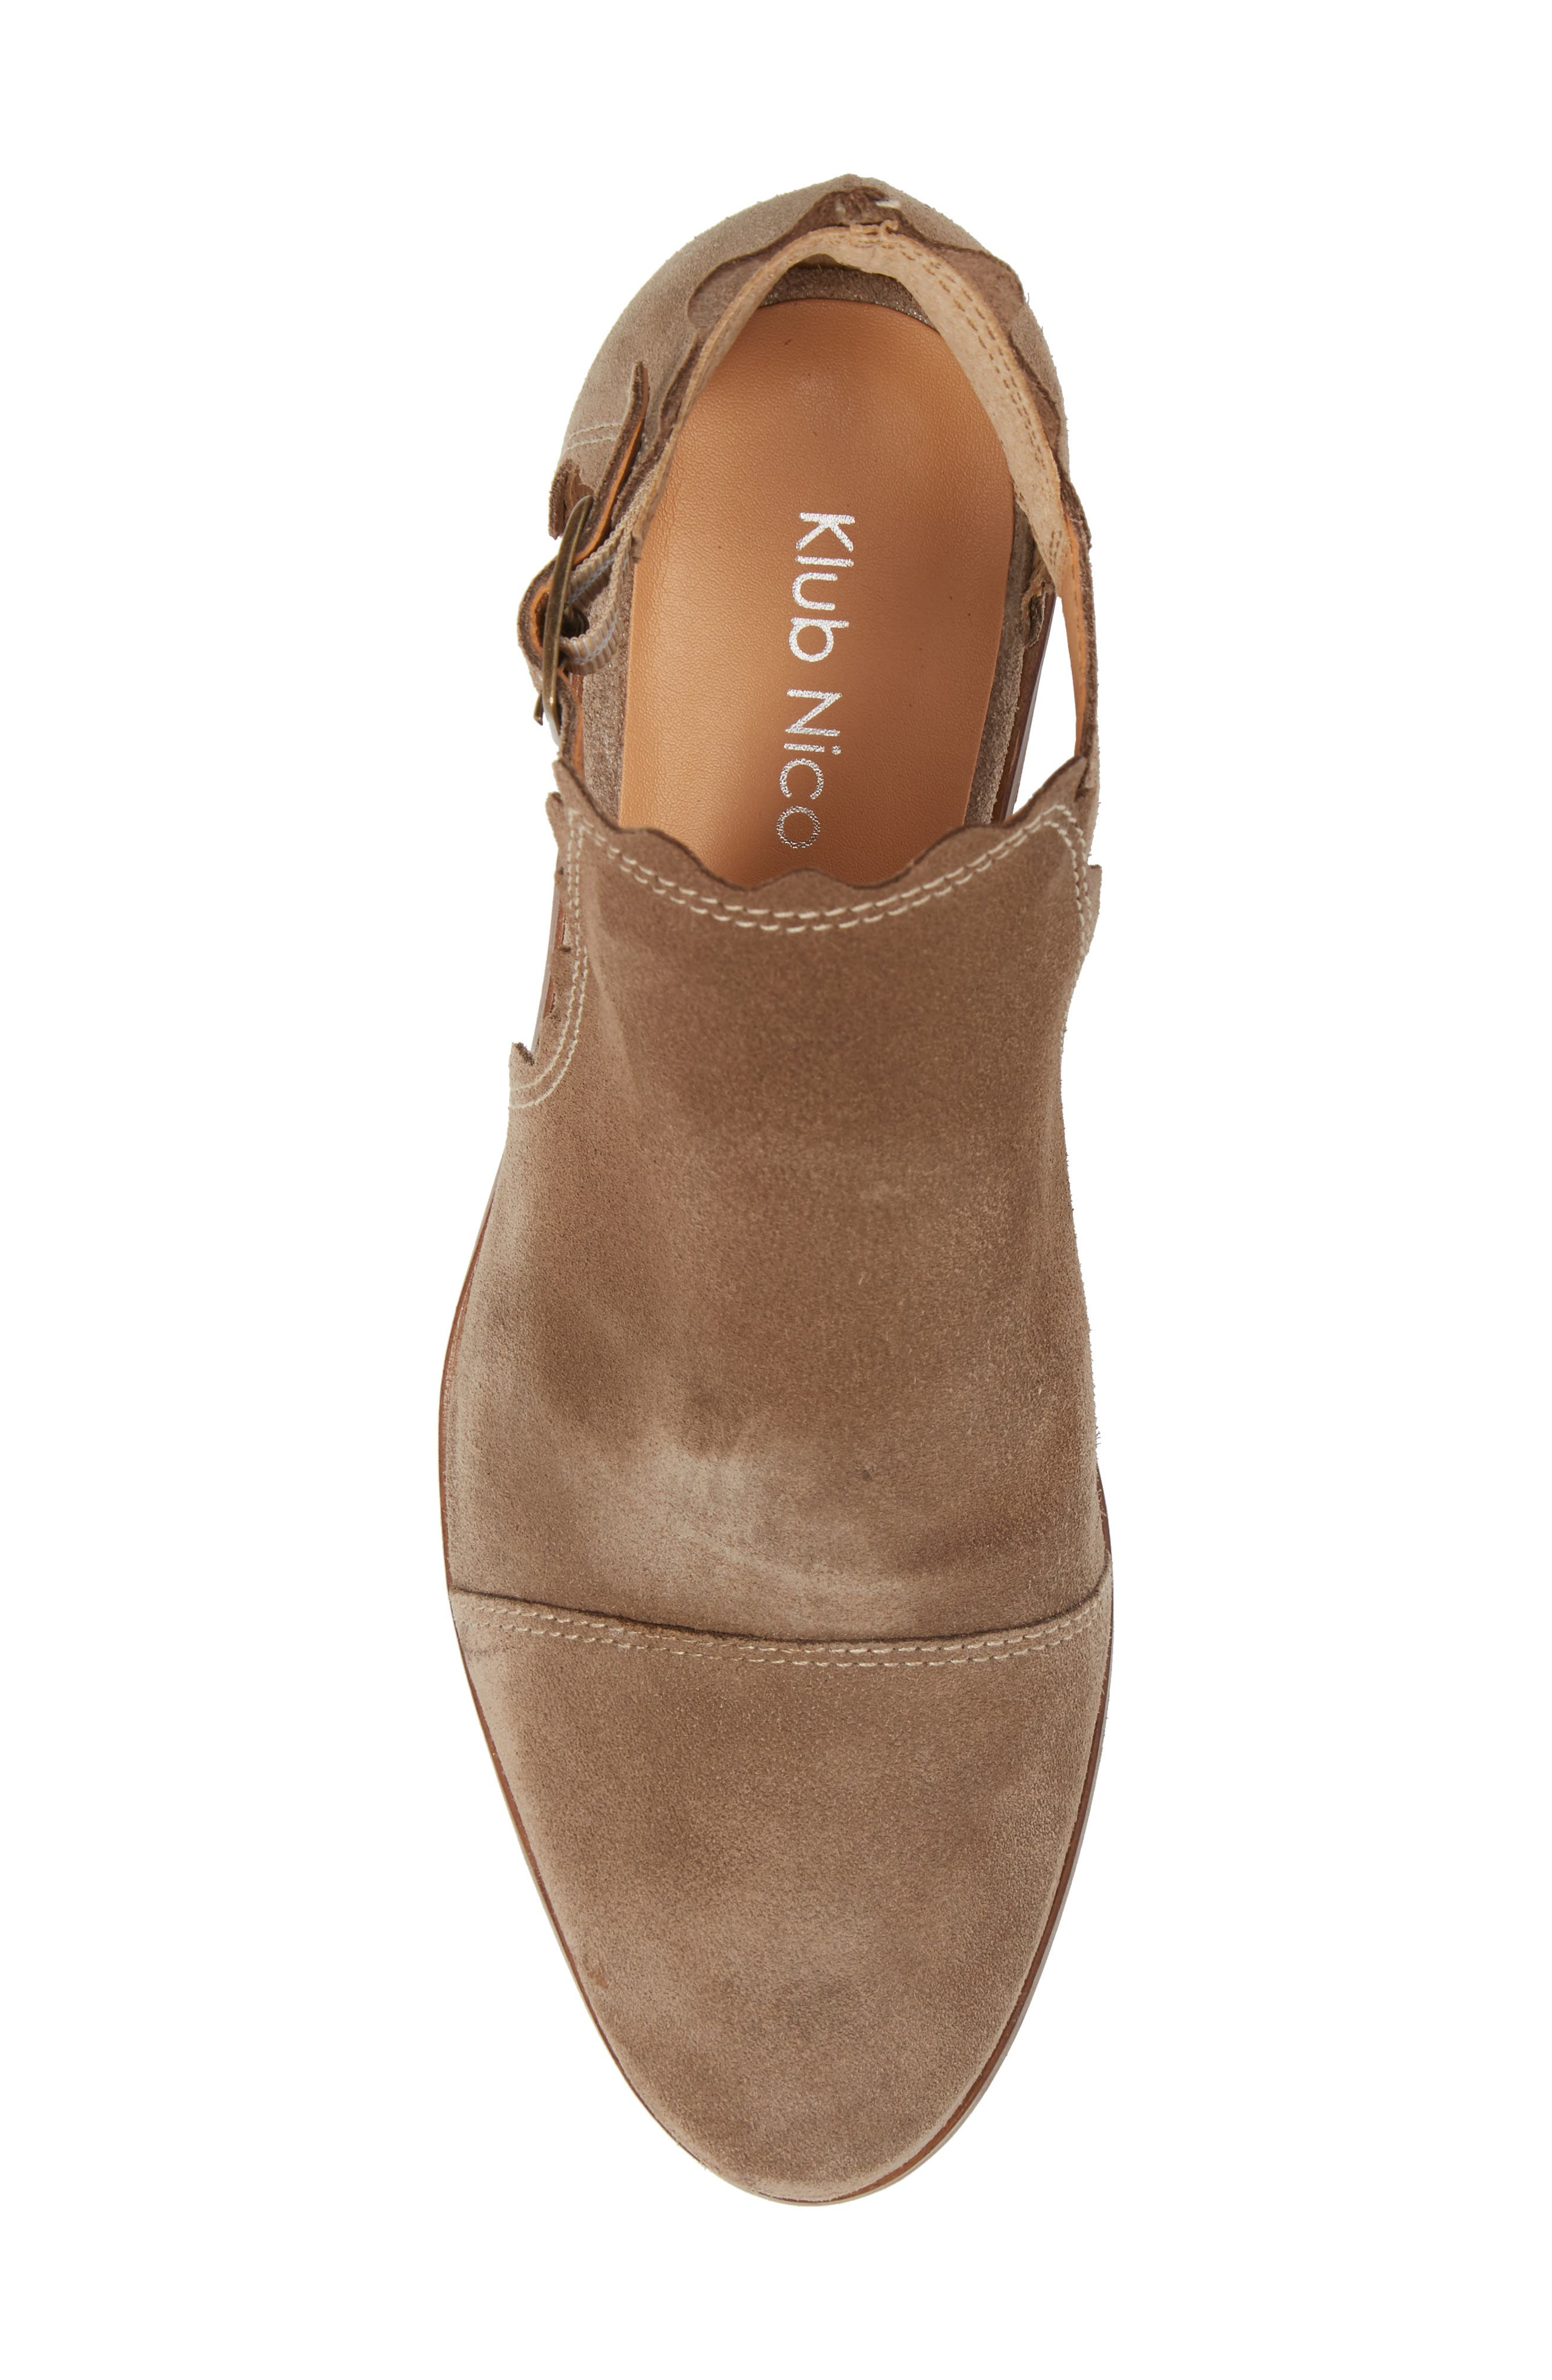 Beau Open Side Bootie,                             Alternate thumbnail 5, color,                             Taupe Suede